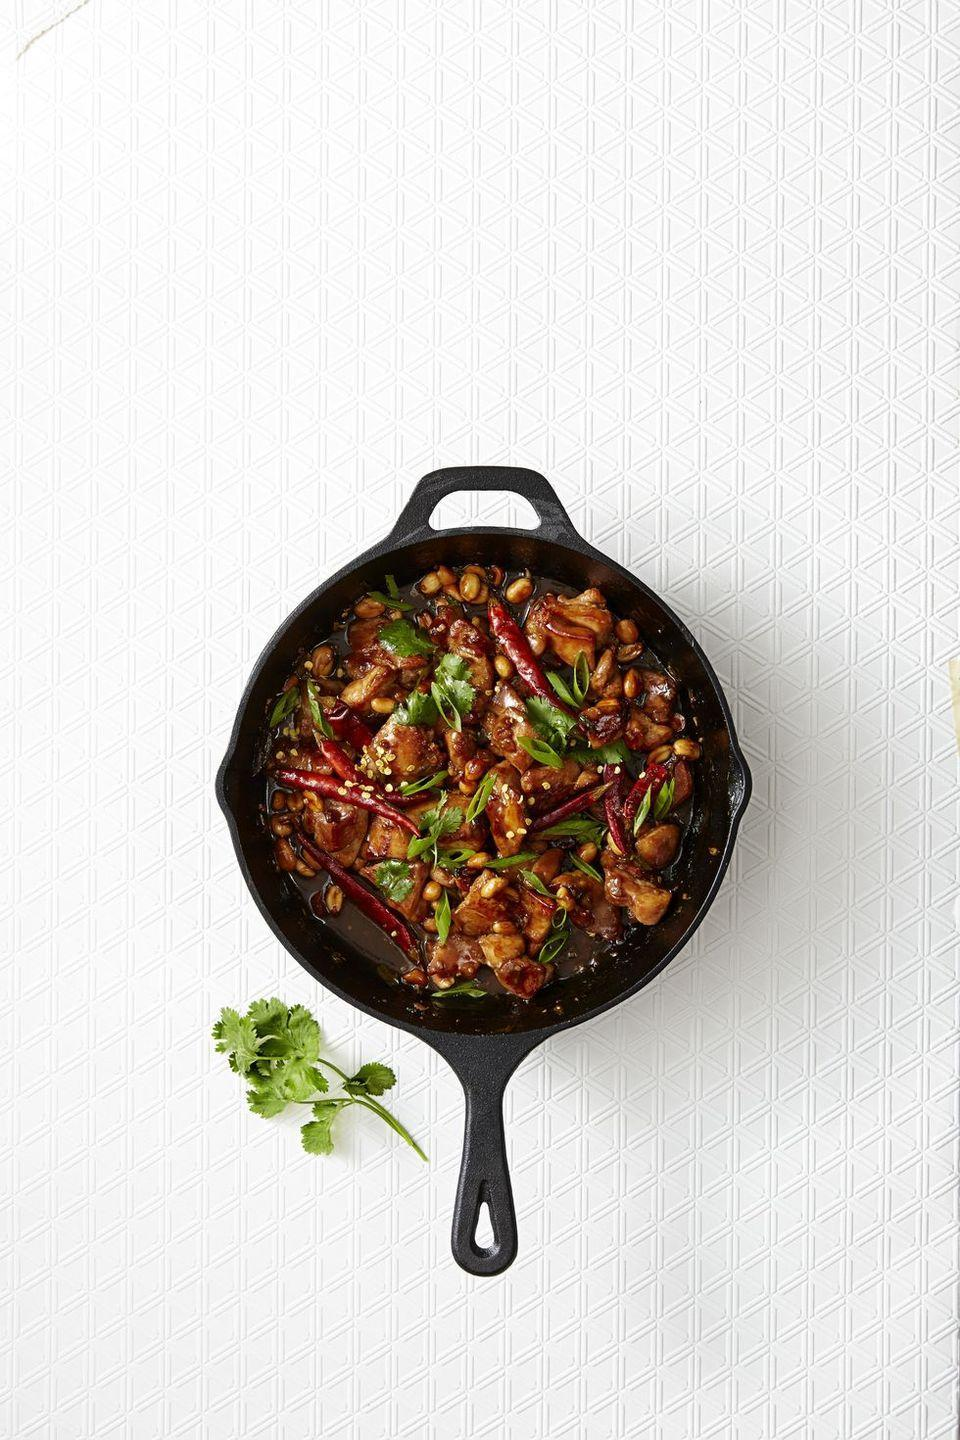 "<p>Calling all spice lovers: This classic Sichuan meal features chicken, peanuts and whole dried chiles.</p><p><em><a href=""https://www.goodhousekeeping.com/food-products/a42818/fiery-kung-pao-chicken-recipe/"" rel=""nofollow noopener"" target=""_blank"" data-ylk=""slk:Get the recipe from Fiery Kung Pao Chicken »"" class=""link rapid-noclick-resp"">Get the recipe from Fiery Kung Pao Chicken »</a></em></p>"